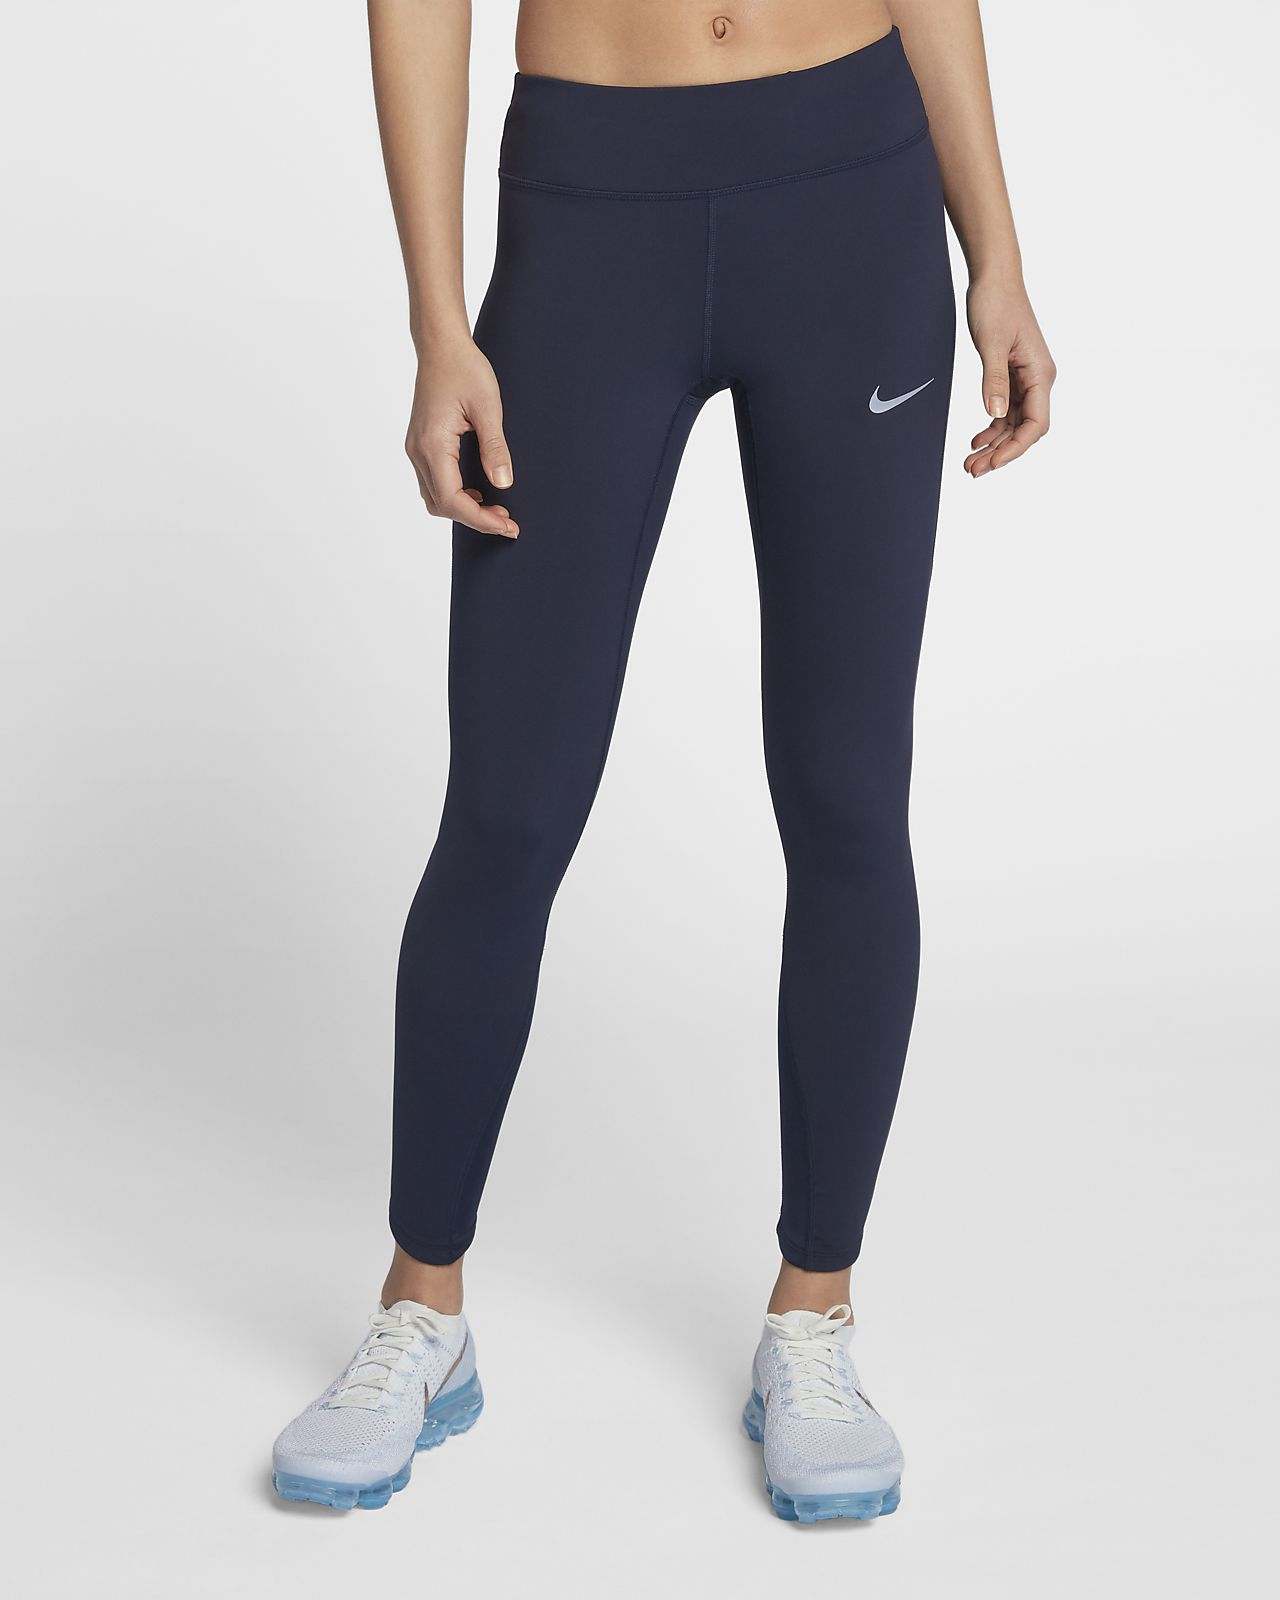 Nike Epic Lux Women s Mid-Rise Running Tights. Nike.com AU 4e41275f0